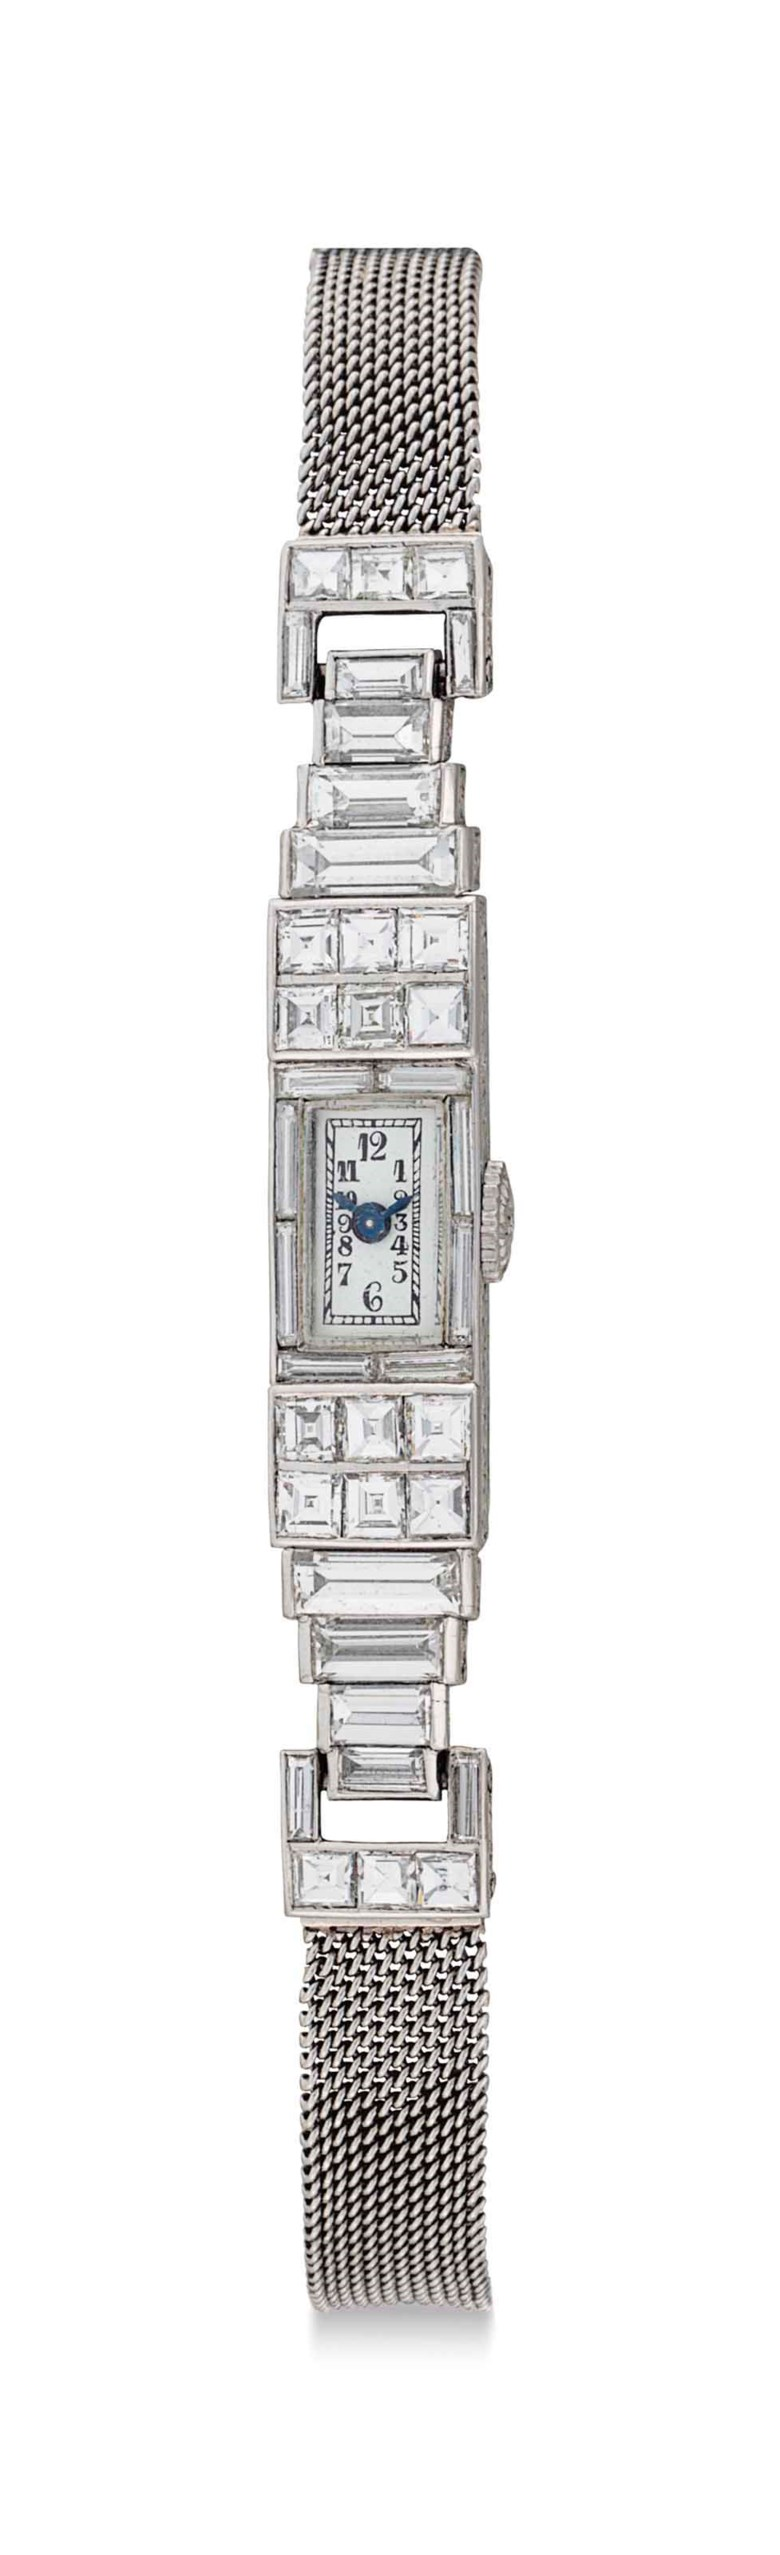 Patek Philippe. A ladies fine platinum and diamond-set bracelet watch, formerly belonging to Florence Preston Graves. Signed Patek Philippe & C., Genève, Movement No. 819262, Case No. 606747, Manufactured in 1928. Estimate $12,000-15,000. This lot is offered in An Evening of Exceptional Watches on 7 December 2017  at Christie's in New York